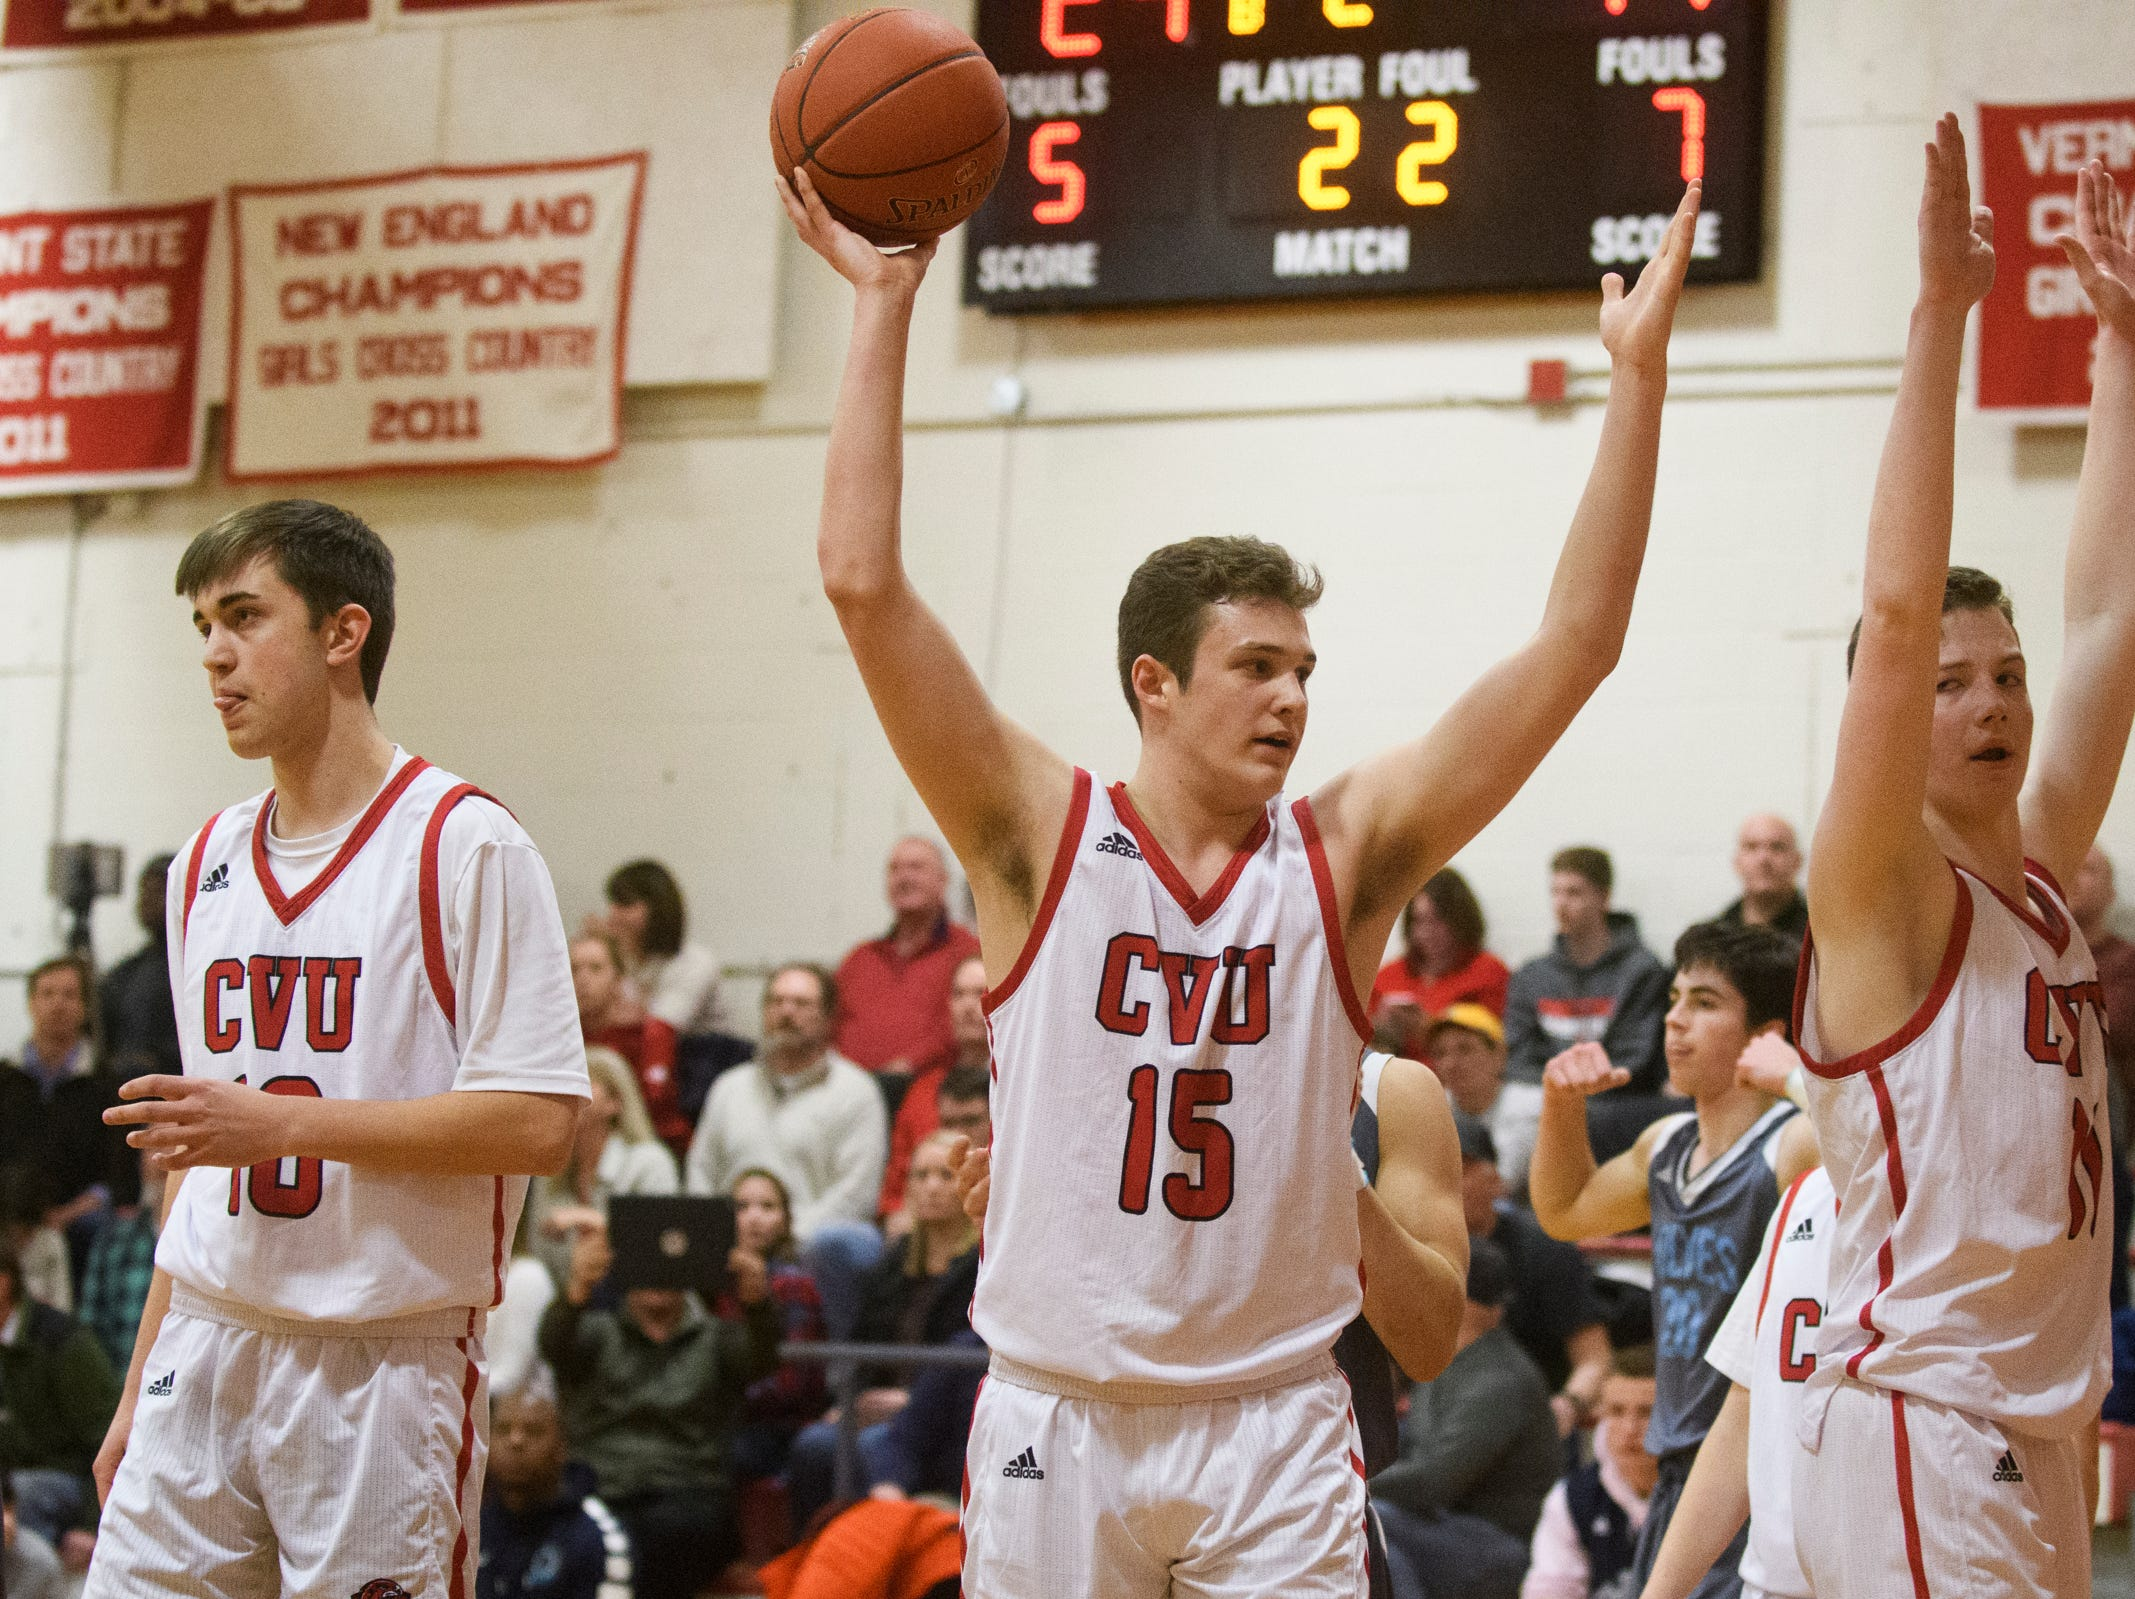 CVU's Bennett Cheer (15) and Cole Otley (11) react after a foul call during the boys basketball game between he South Burlington Wolves and the Champlain Valley Union Redhawks at CVU High School on Tuesday night March 5, 2019 in Hinesburg, Vermont.